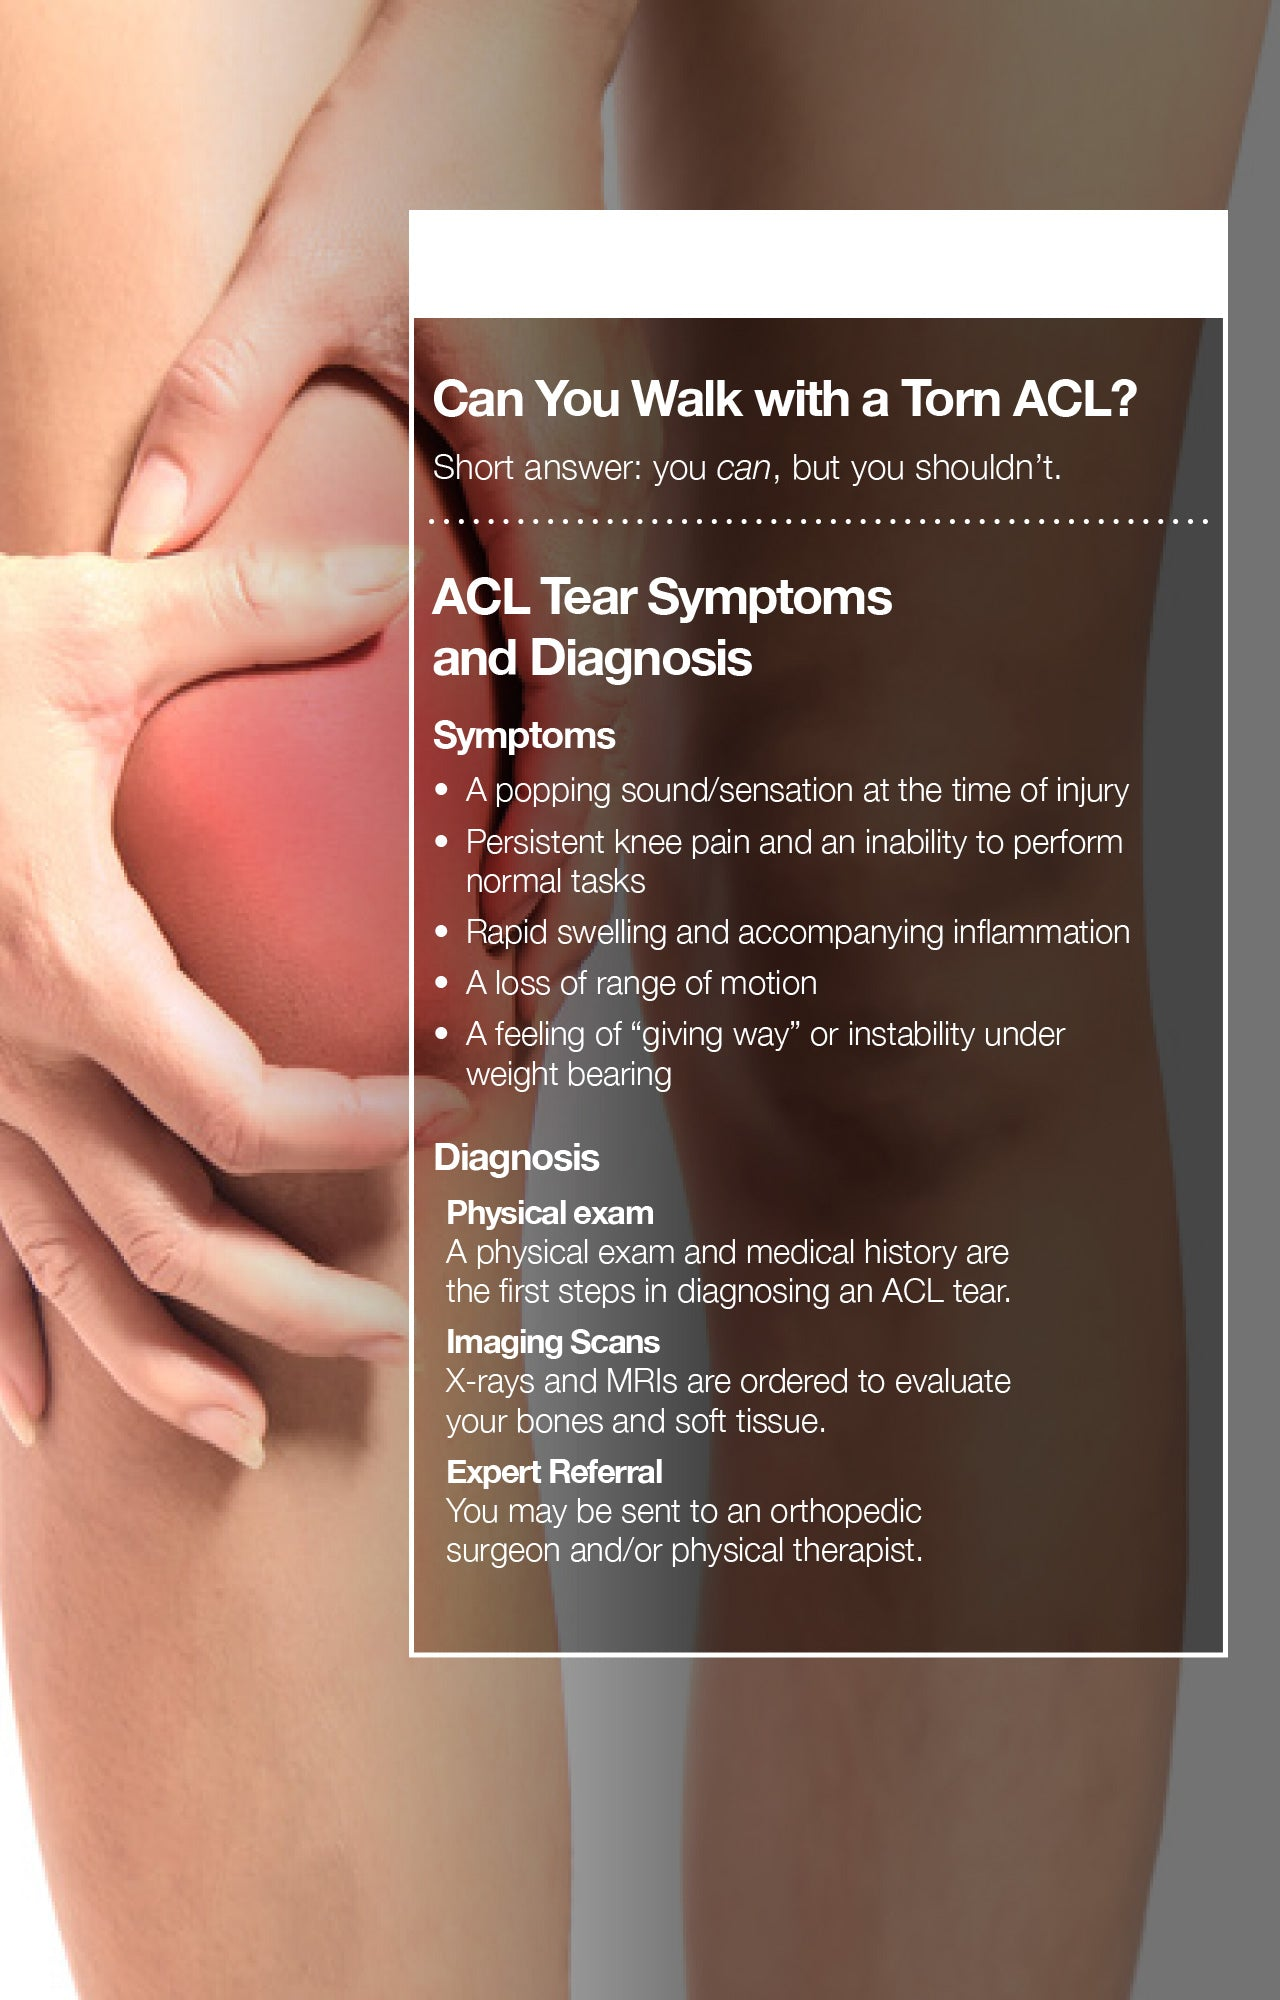 Can You Walk with a Torn ACL?